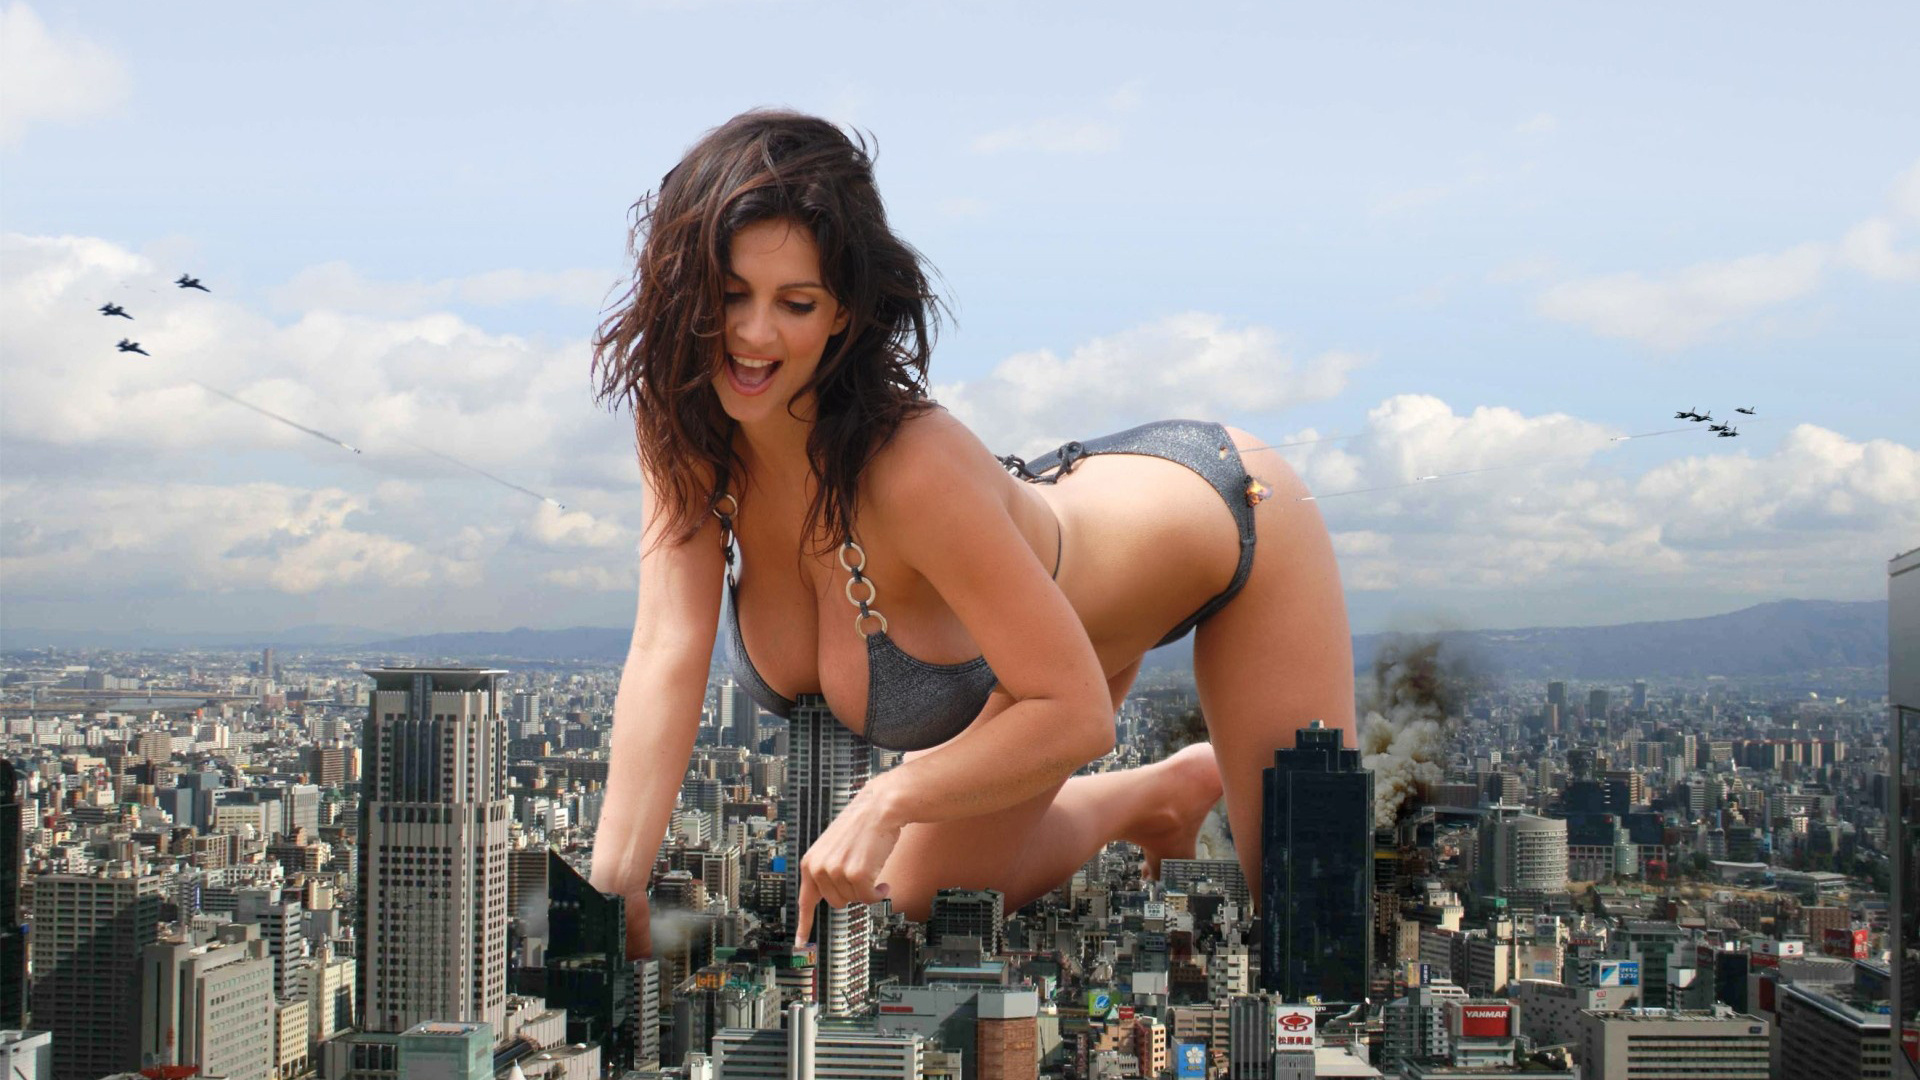 Giantess nude in the city exposed photos